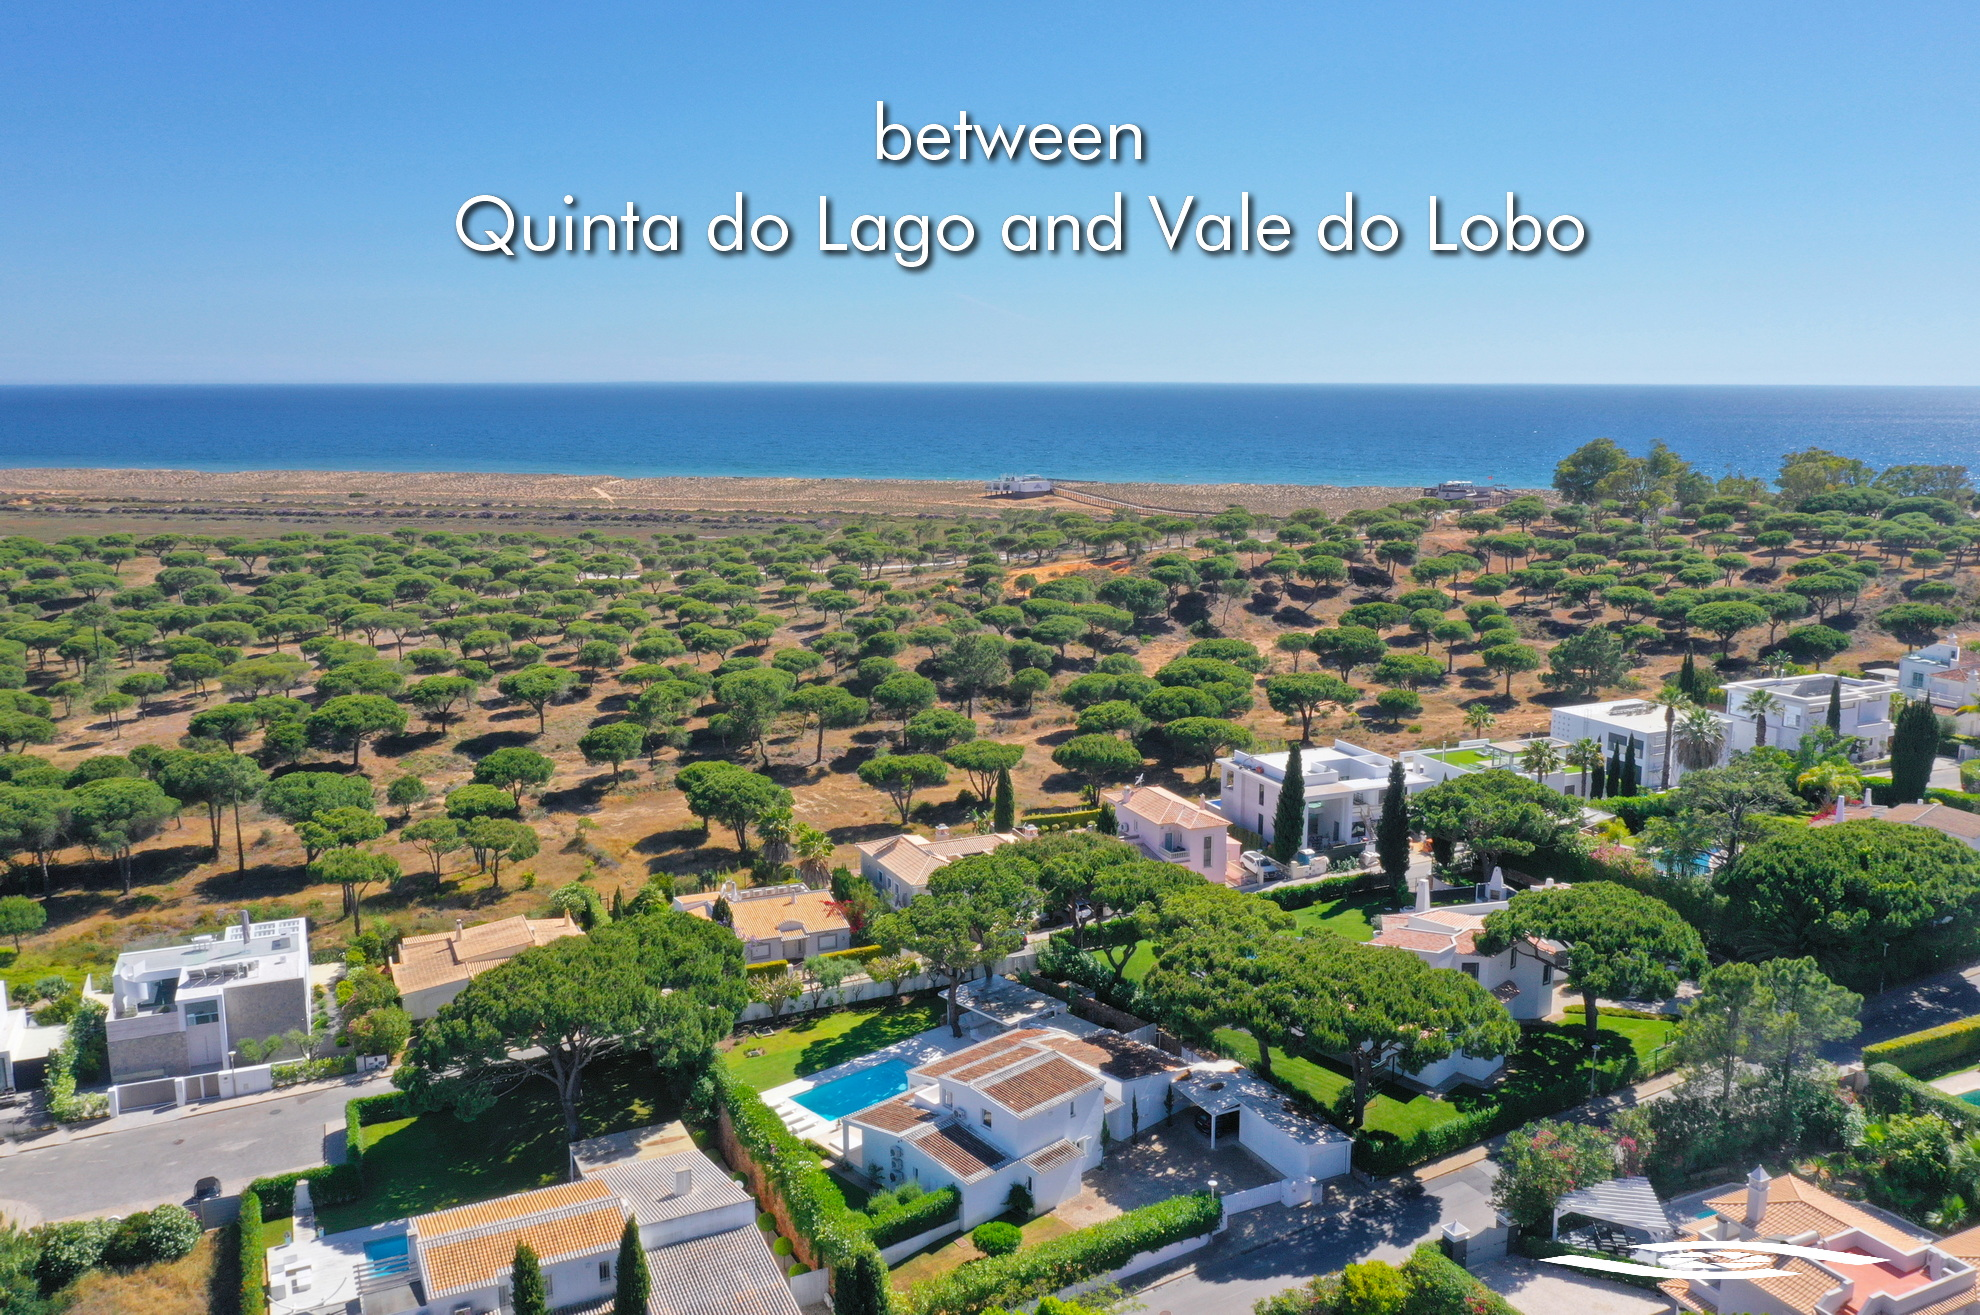 Between Quinta do Lago & Vale do Lobo has a vast number of housing and apartment developments close to the sea, without the costs of a luxury resort, however they benefit from the service of good quality infrastructure, proximity to 7 golfs, the main services of the malls, the restaurants, private security, surrounded by an environment of nature, ocean and the Ria Formosa!